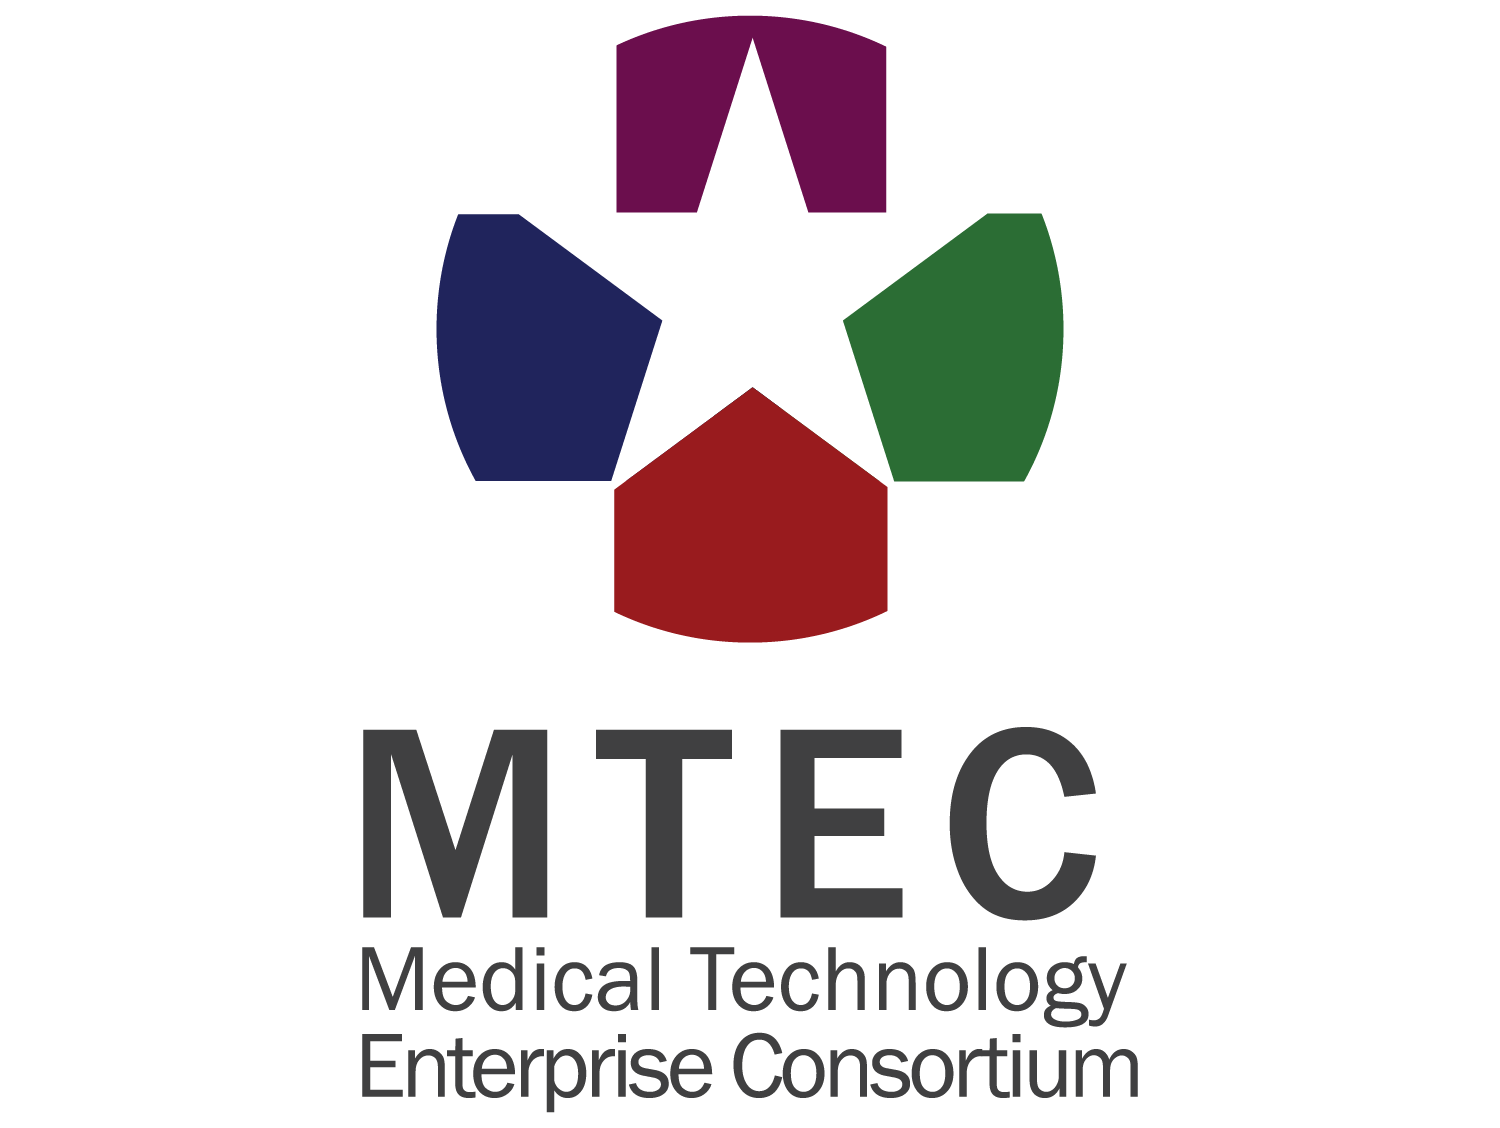 Medical Technology Enterprise consortium logo